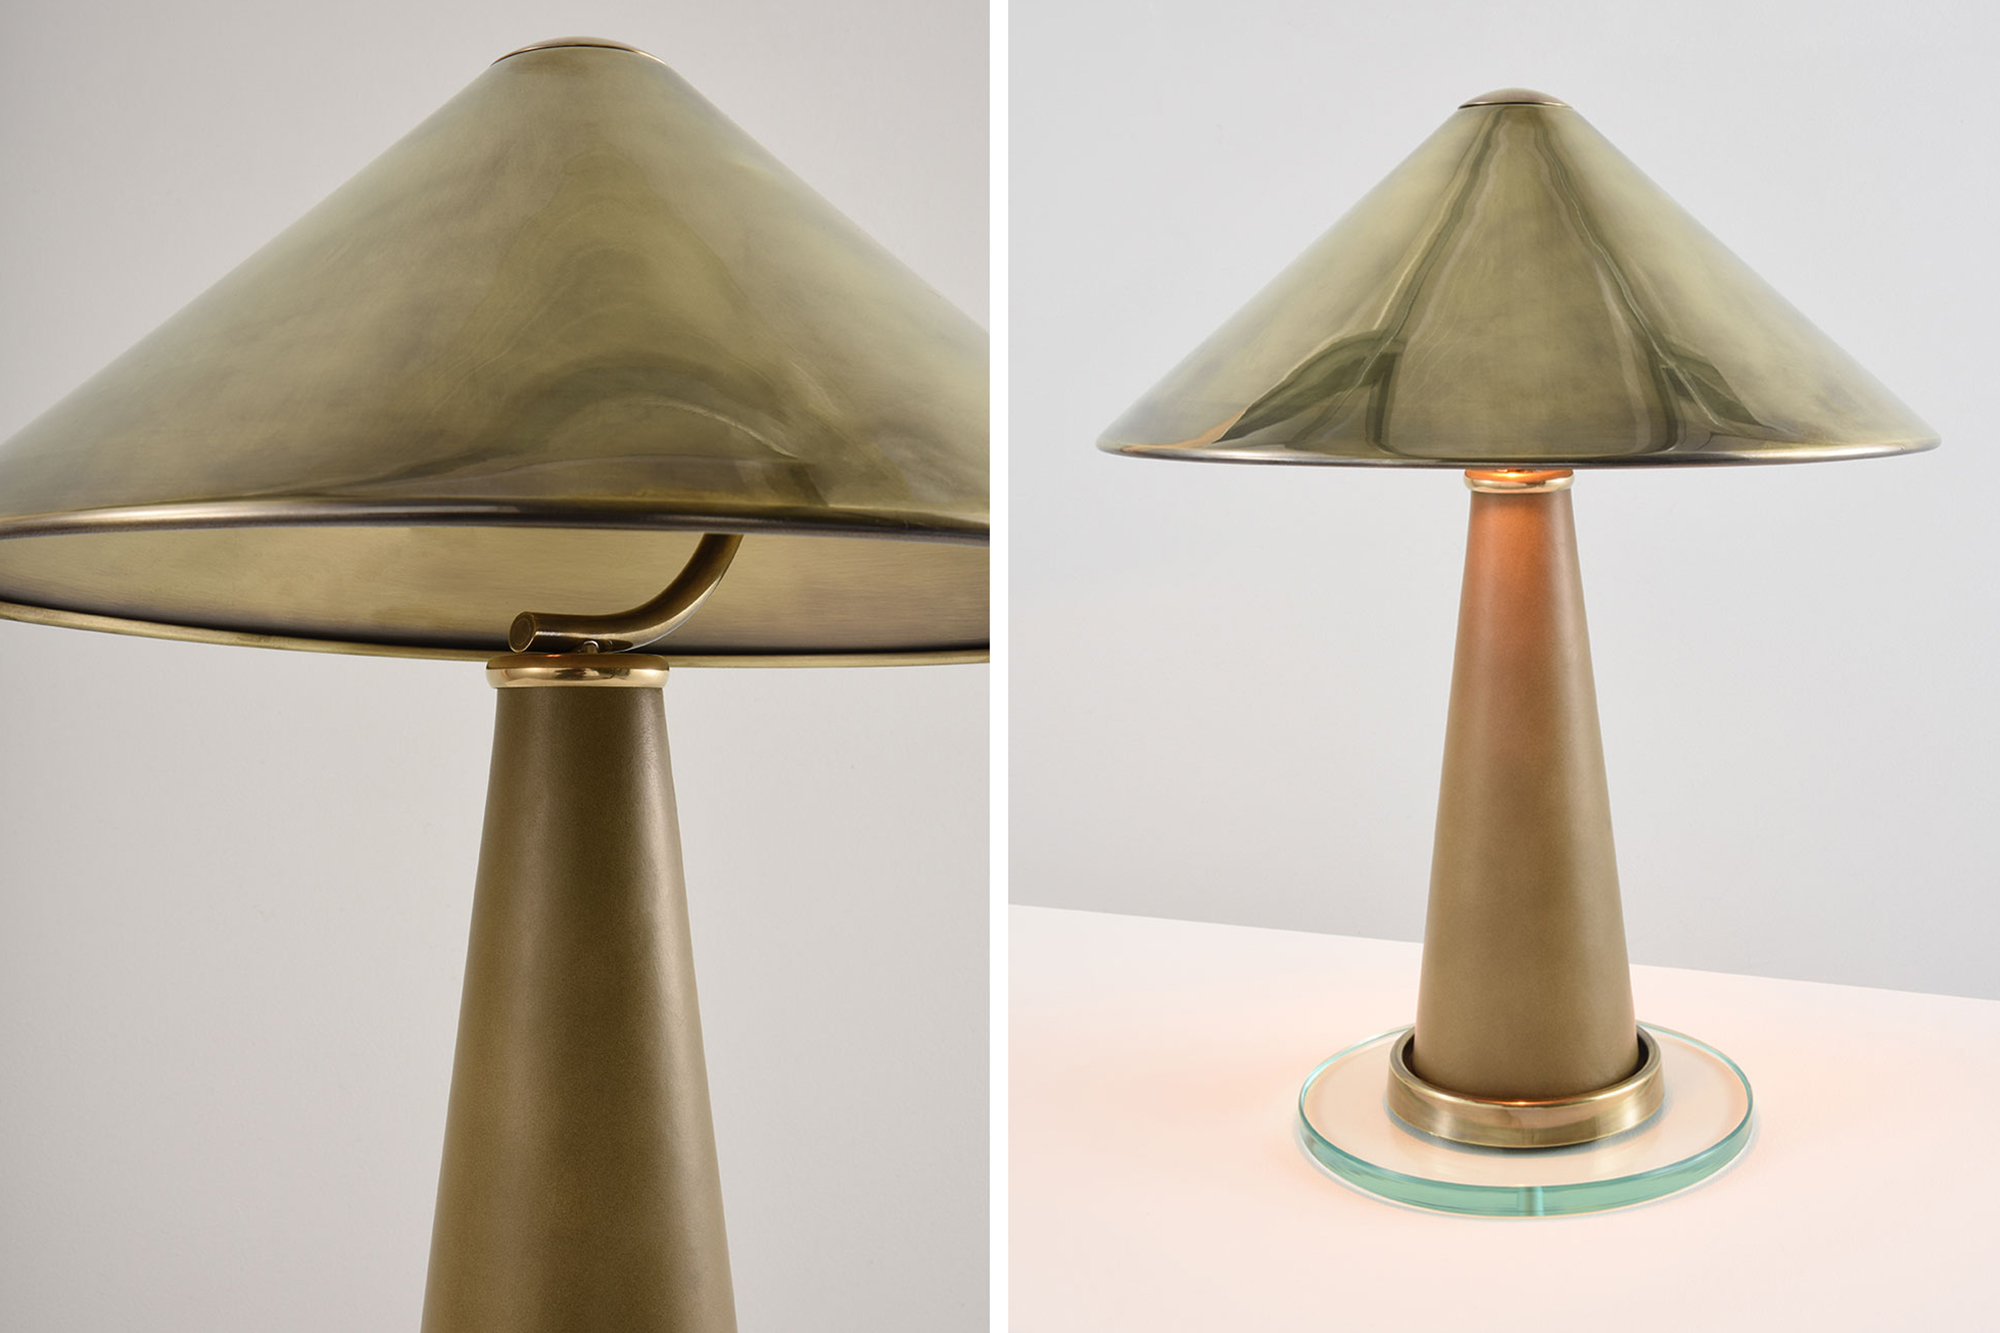 Collier Webb Shitake - a leather a brass table lamp